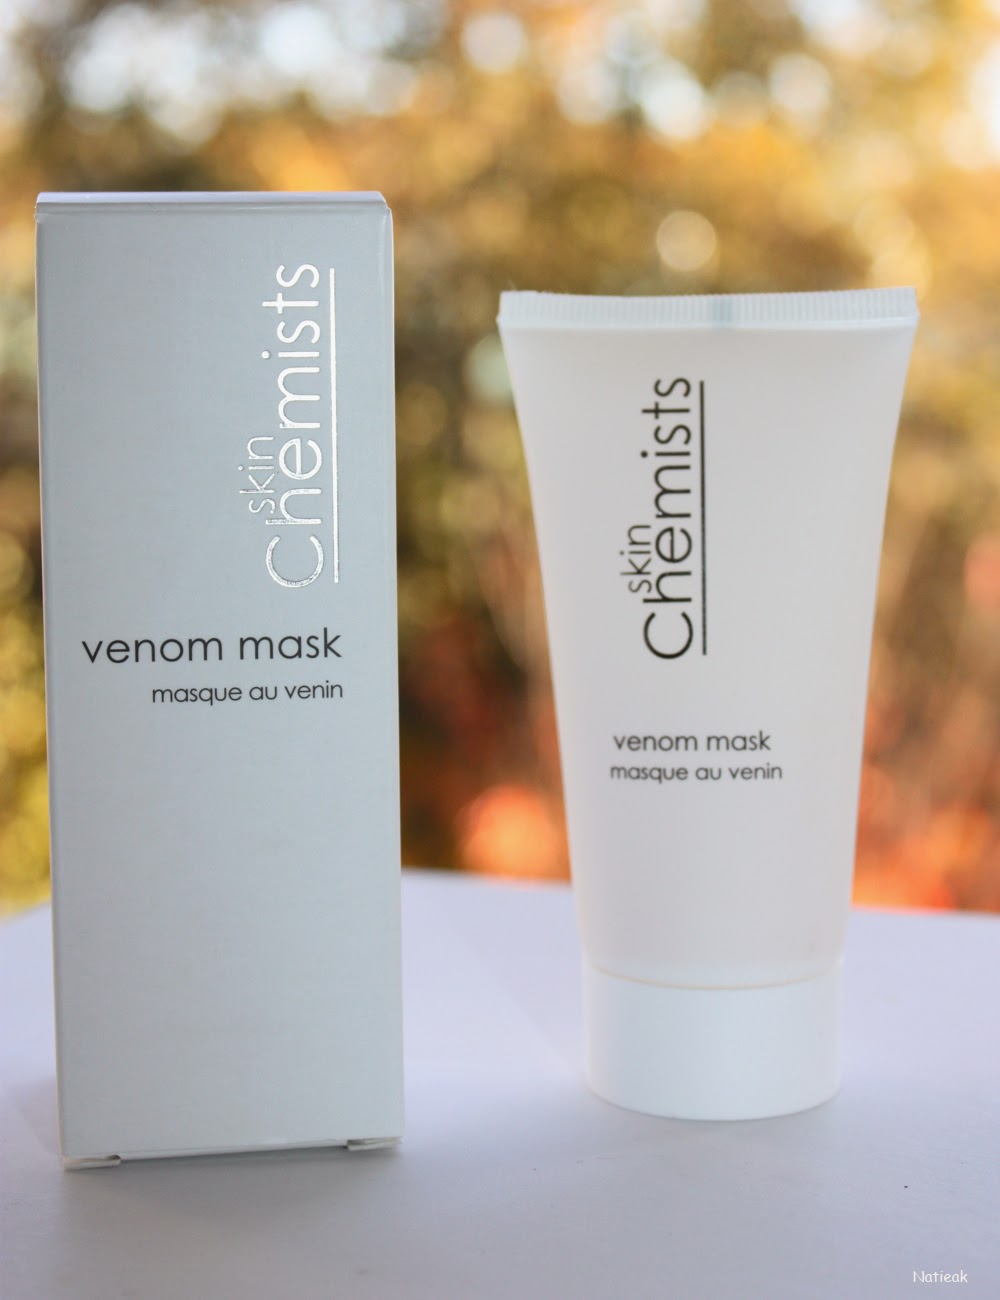 Masque au venin de serpent, venom mask SkinChemists